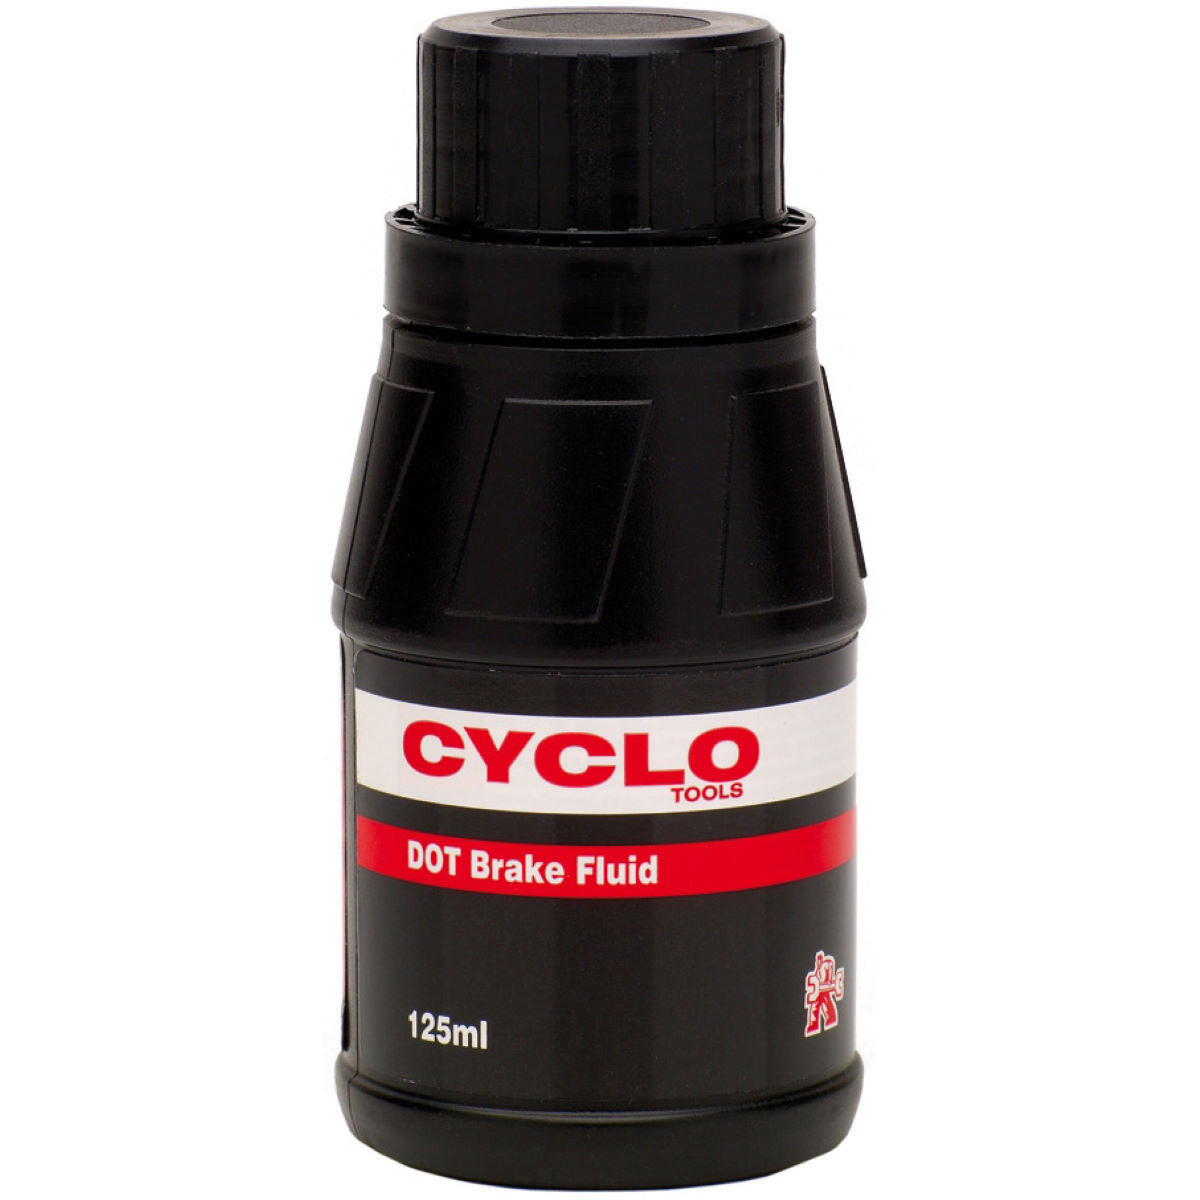 Weldtite Cyclo Dot Brake Fluid - Aceites de freno